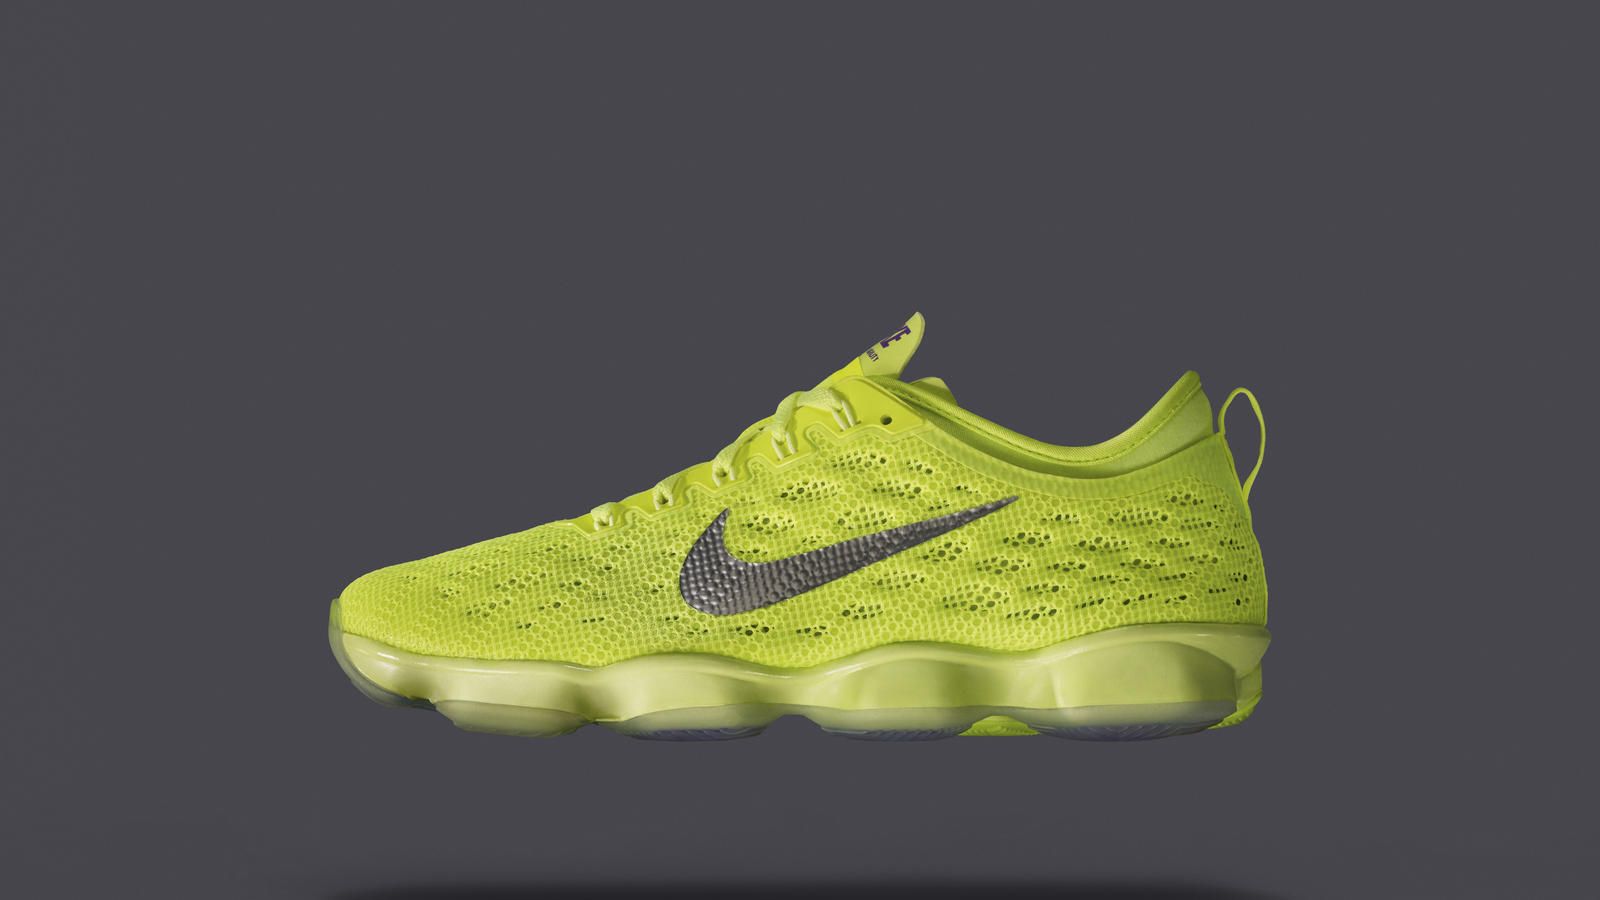 388be98232a0 Zoom Reimagined  The Nike Zoom Fit Agility - Nike News